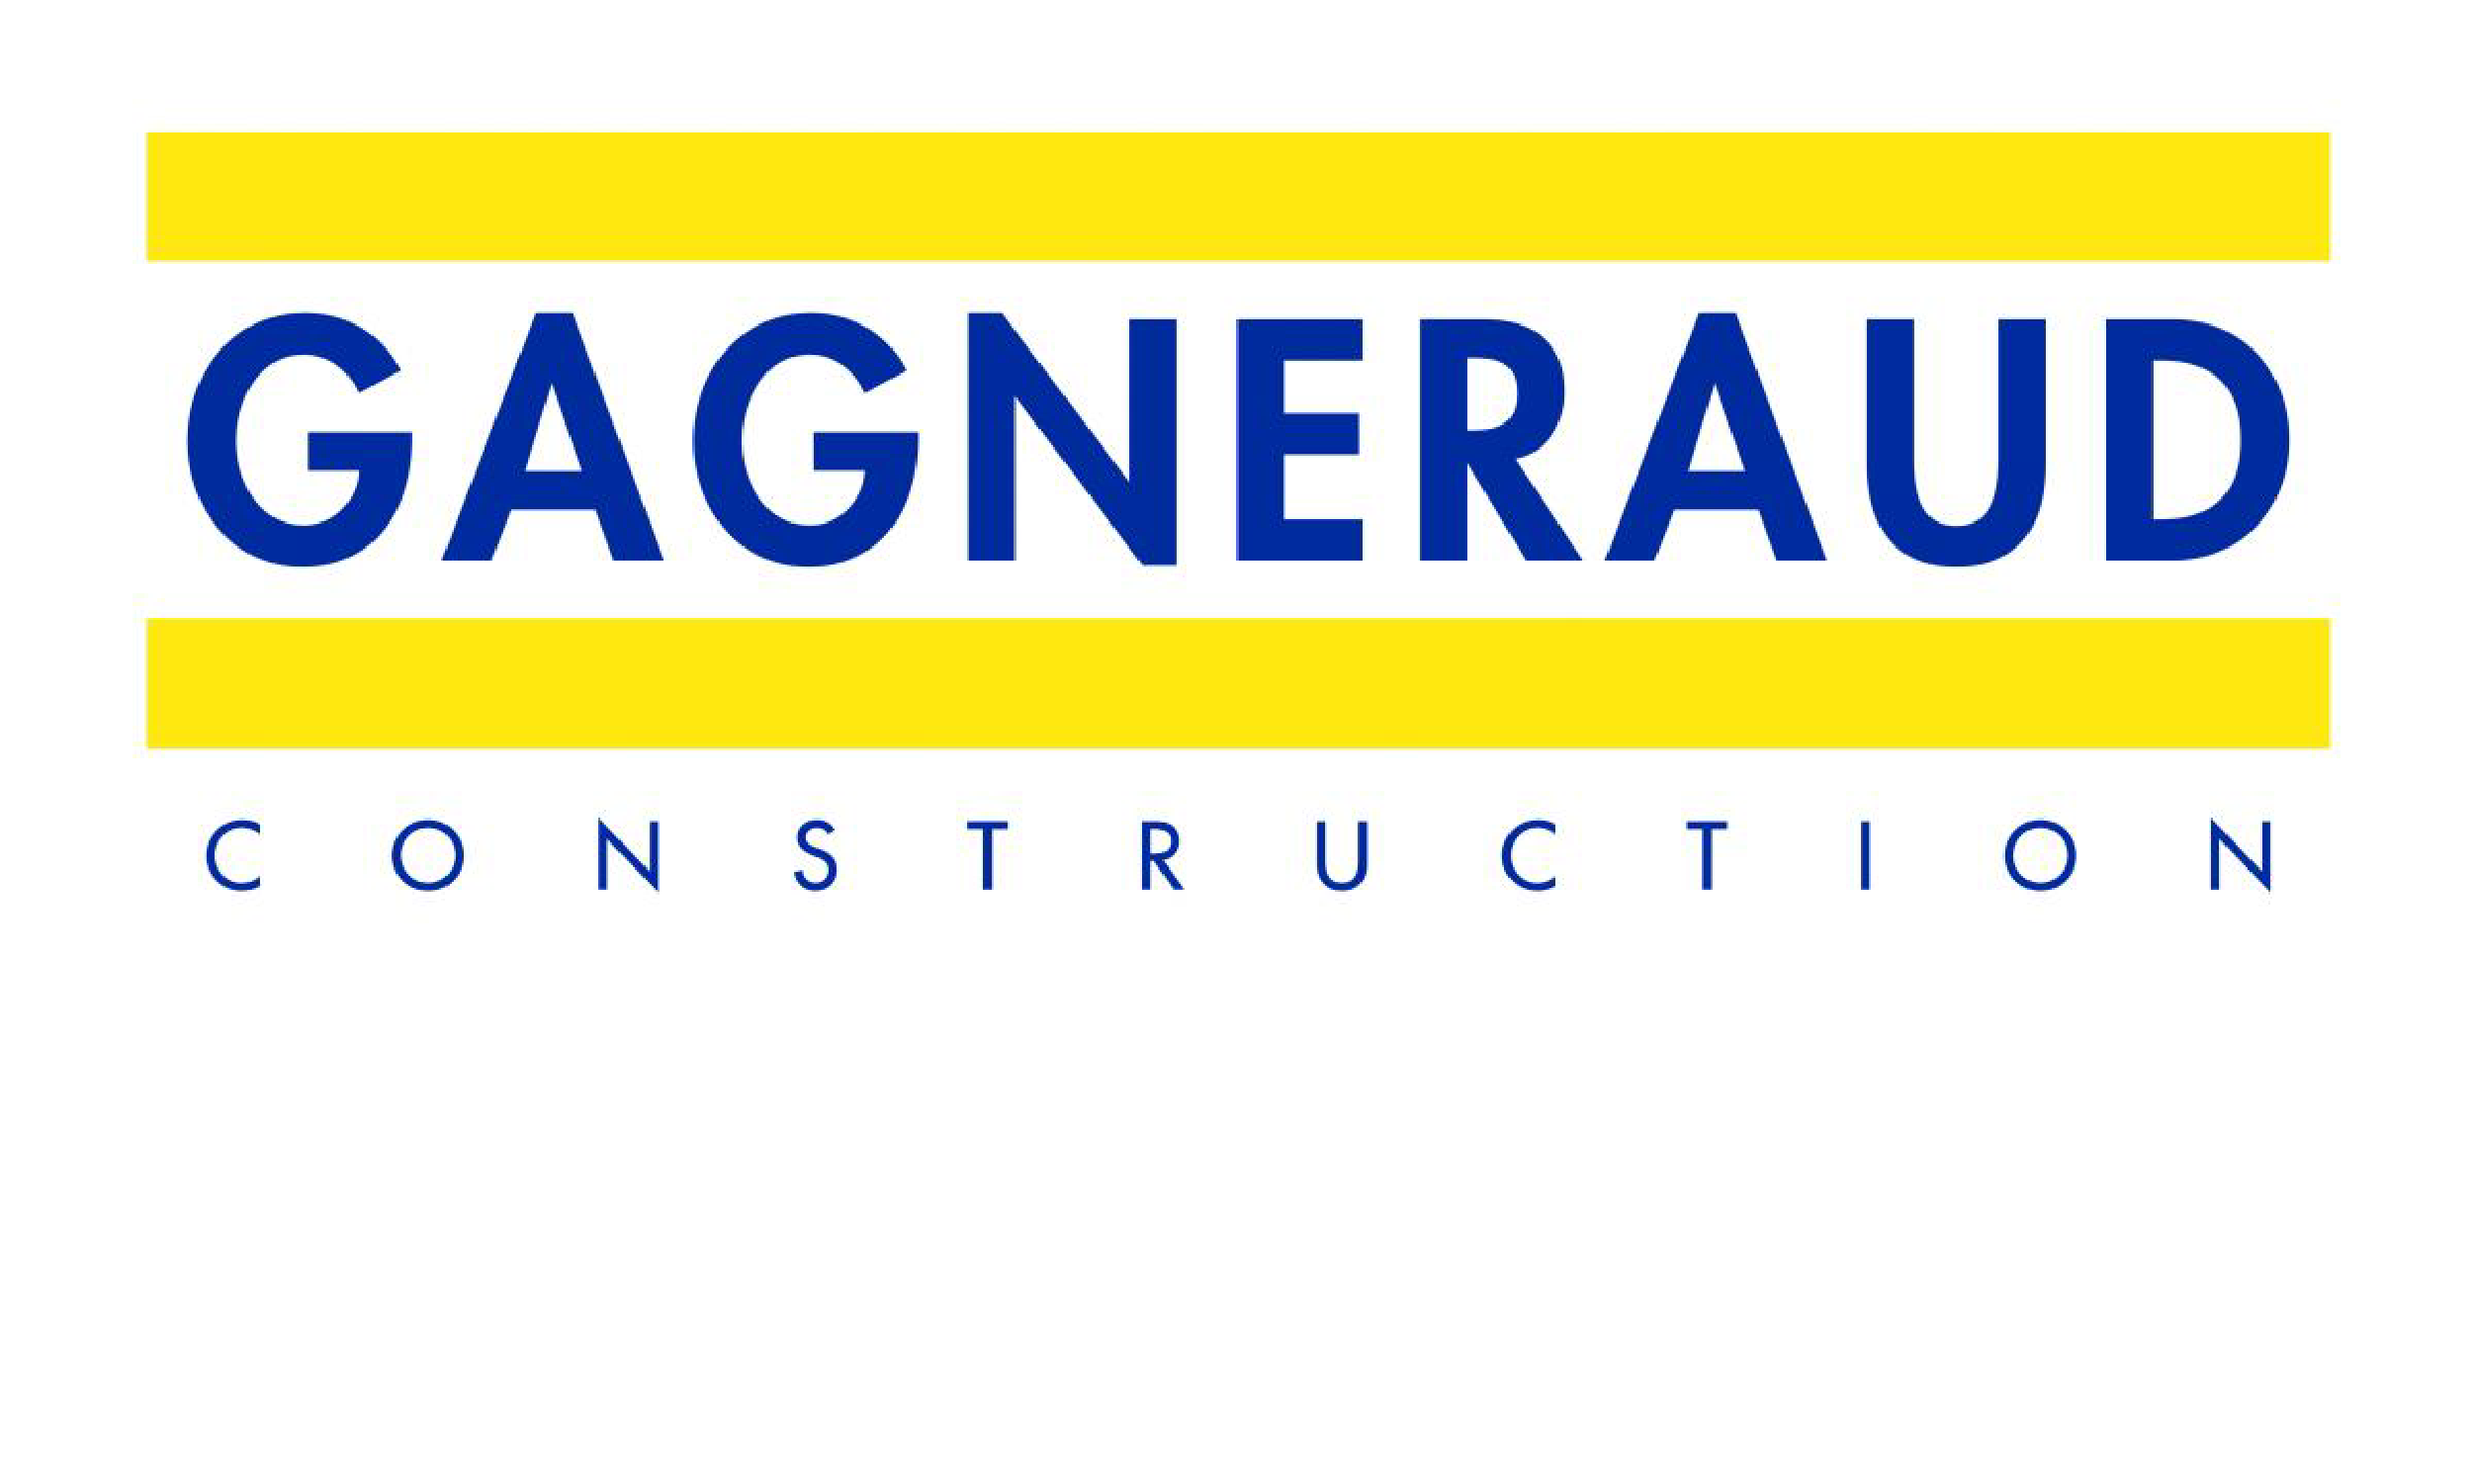 Gagneraud-nos clients-IFOTEC